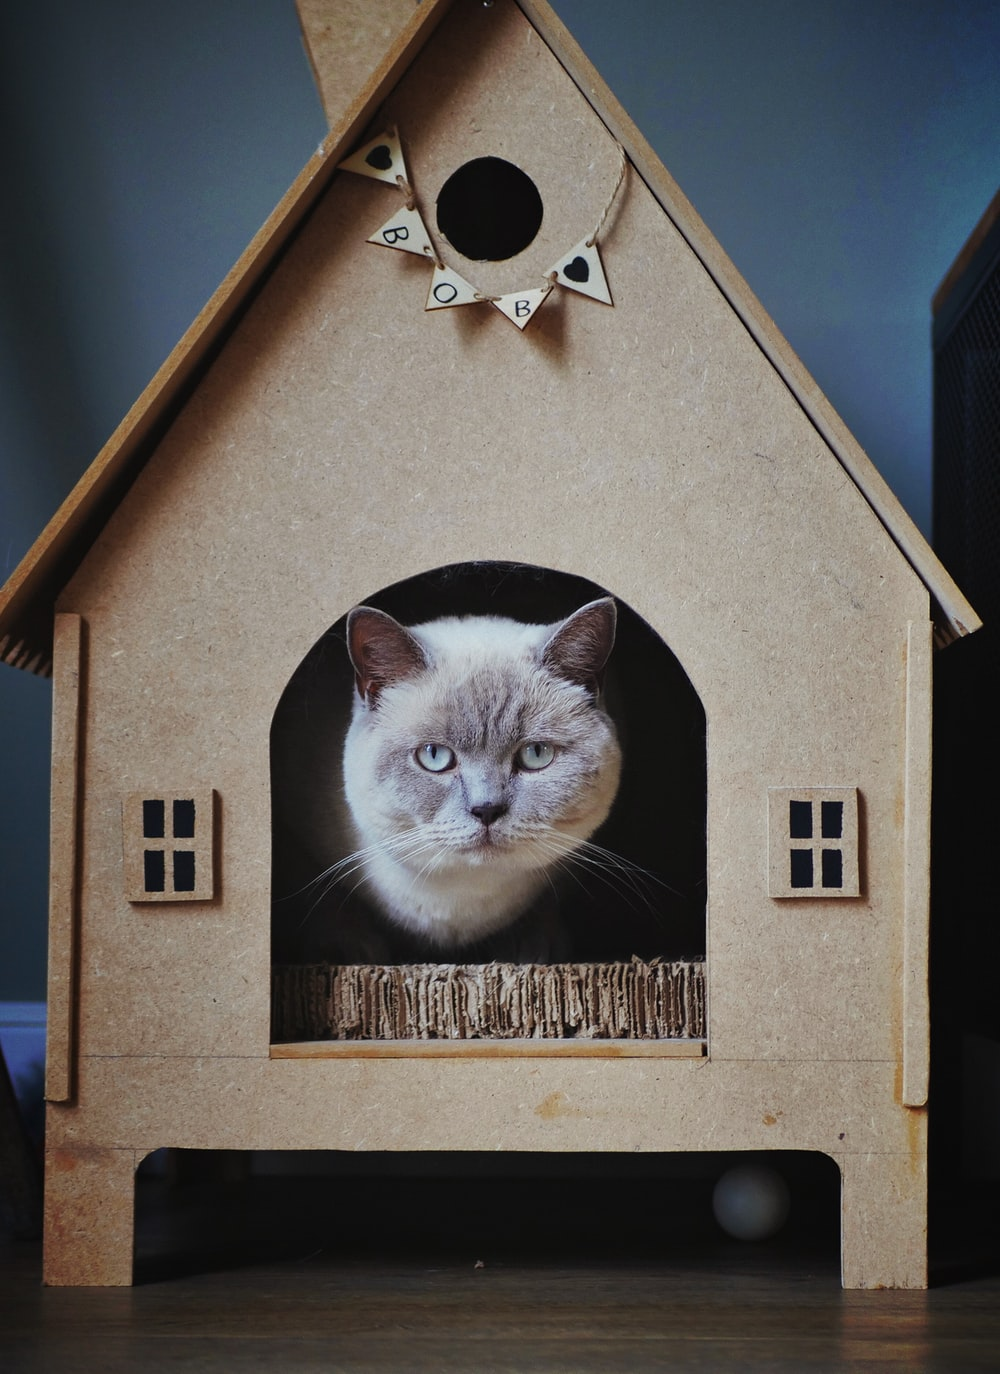 short-furred white cat on cat house